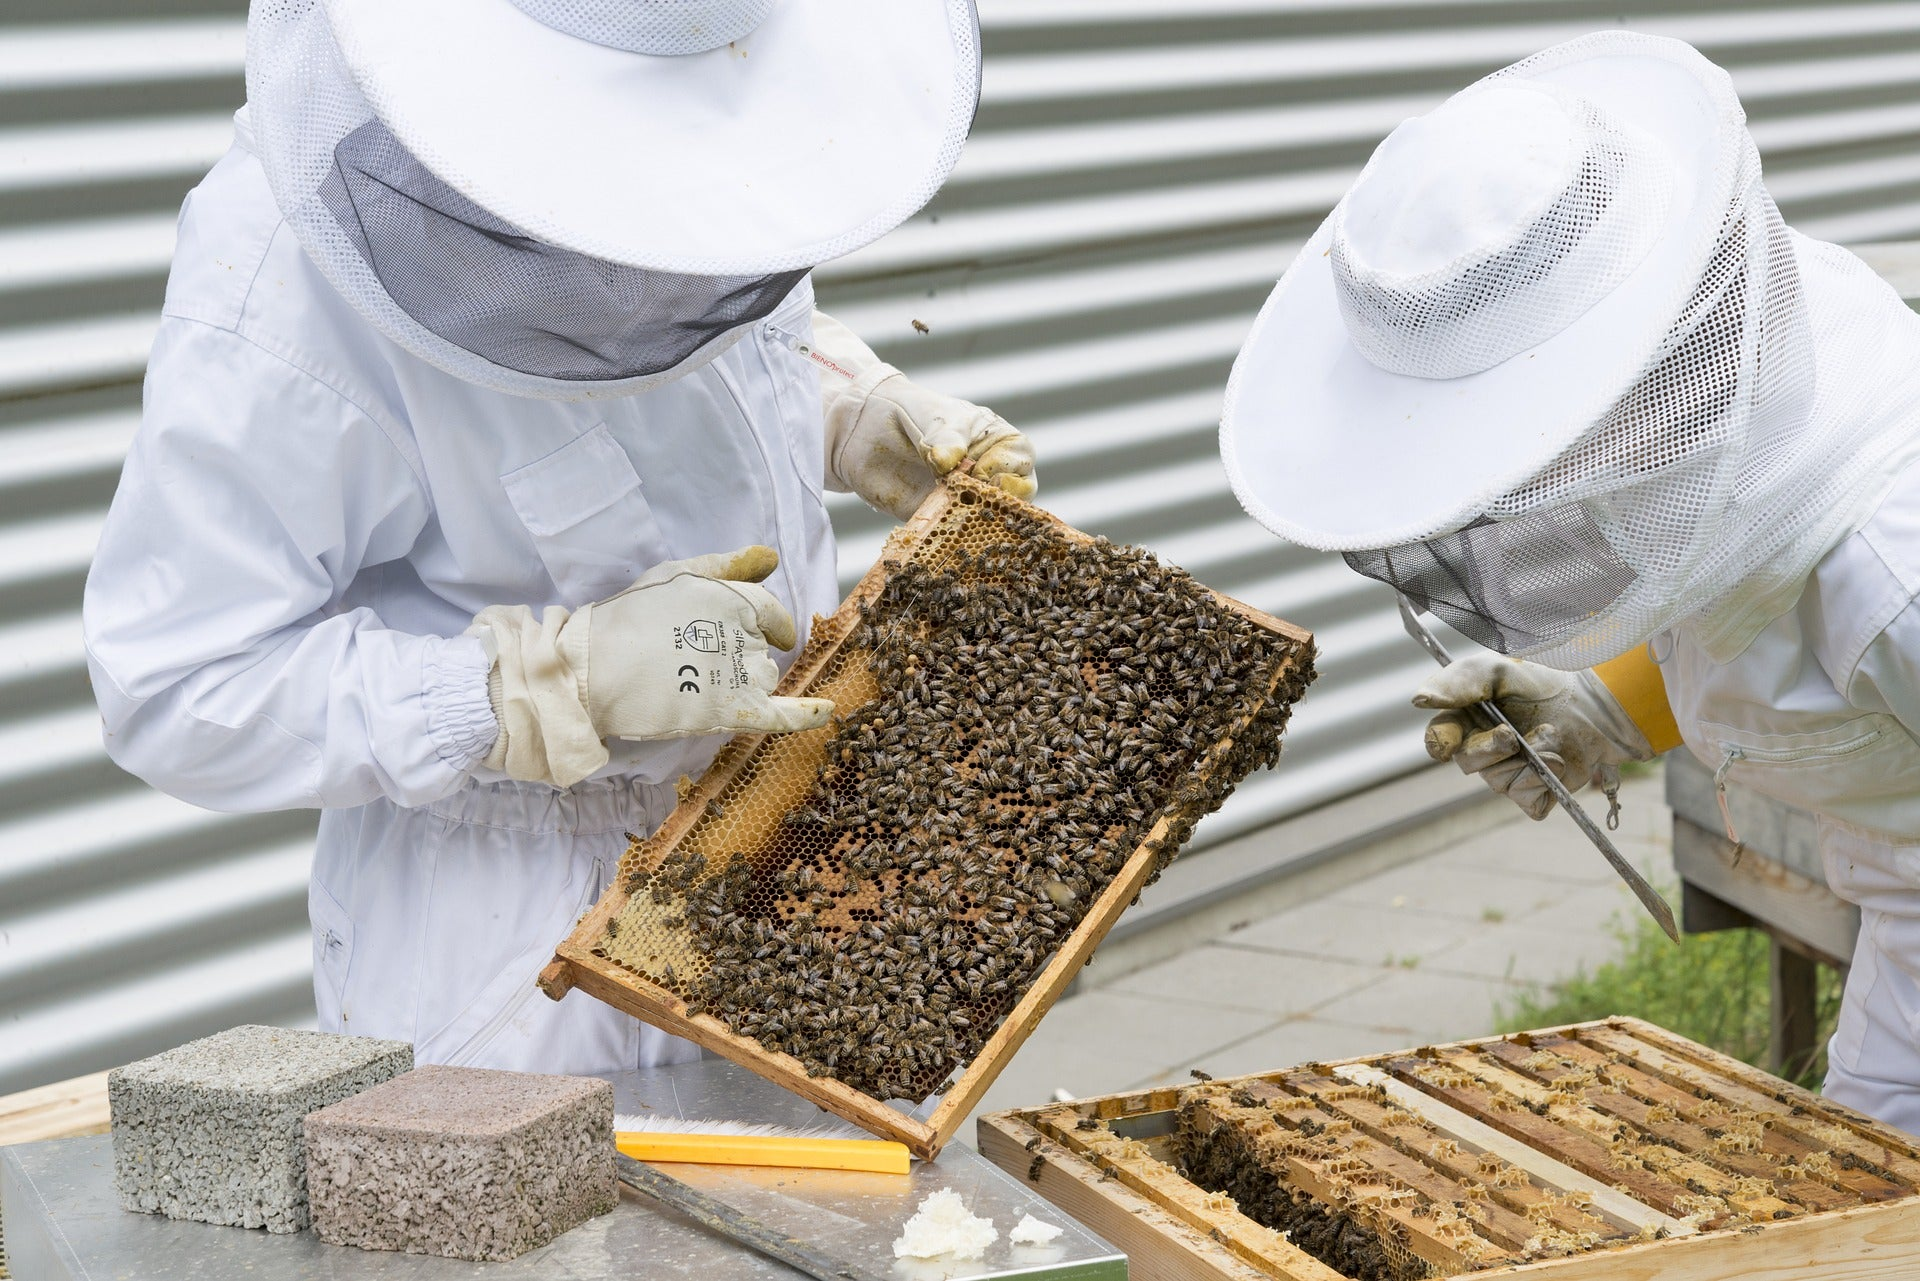 two beekeepers looking at beehive frame